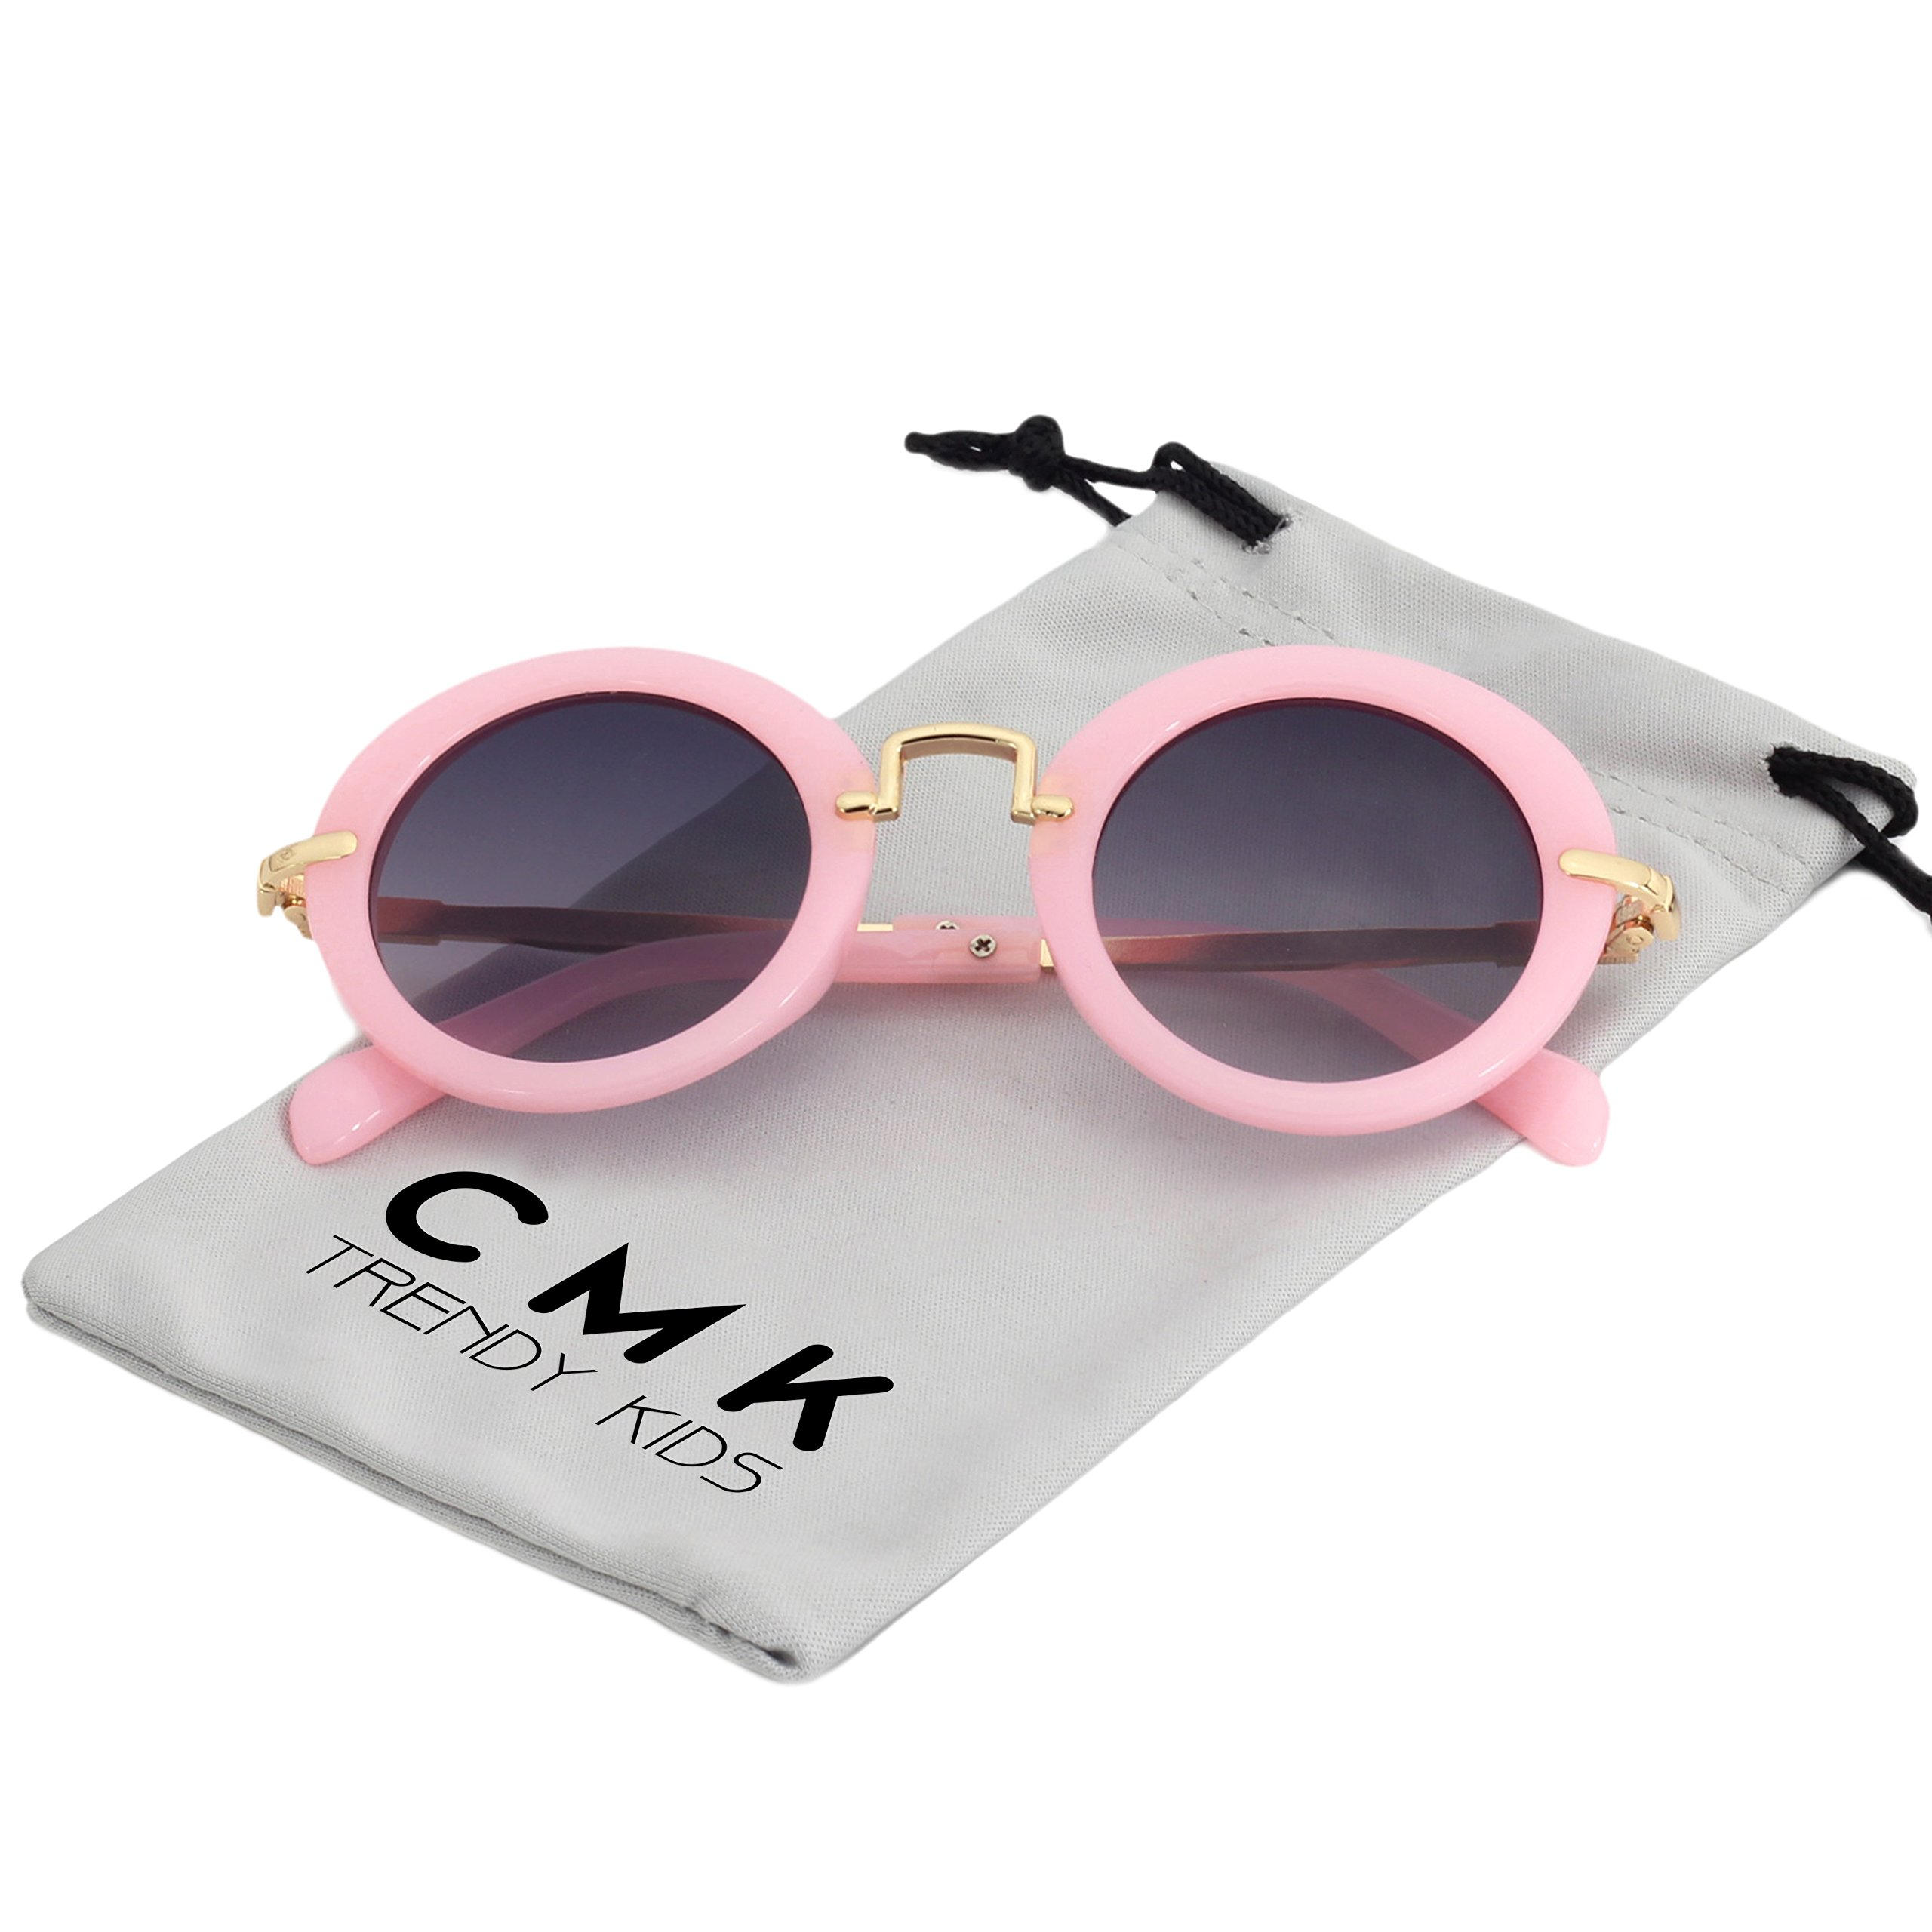 CMK Trendy Kids Classic Toddler Round Sunglasses for Little Girls and Boys Metal Legs (CMK180201_PK)